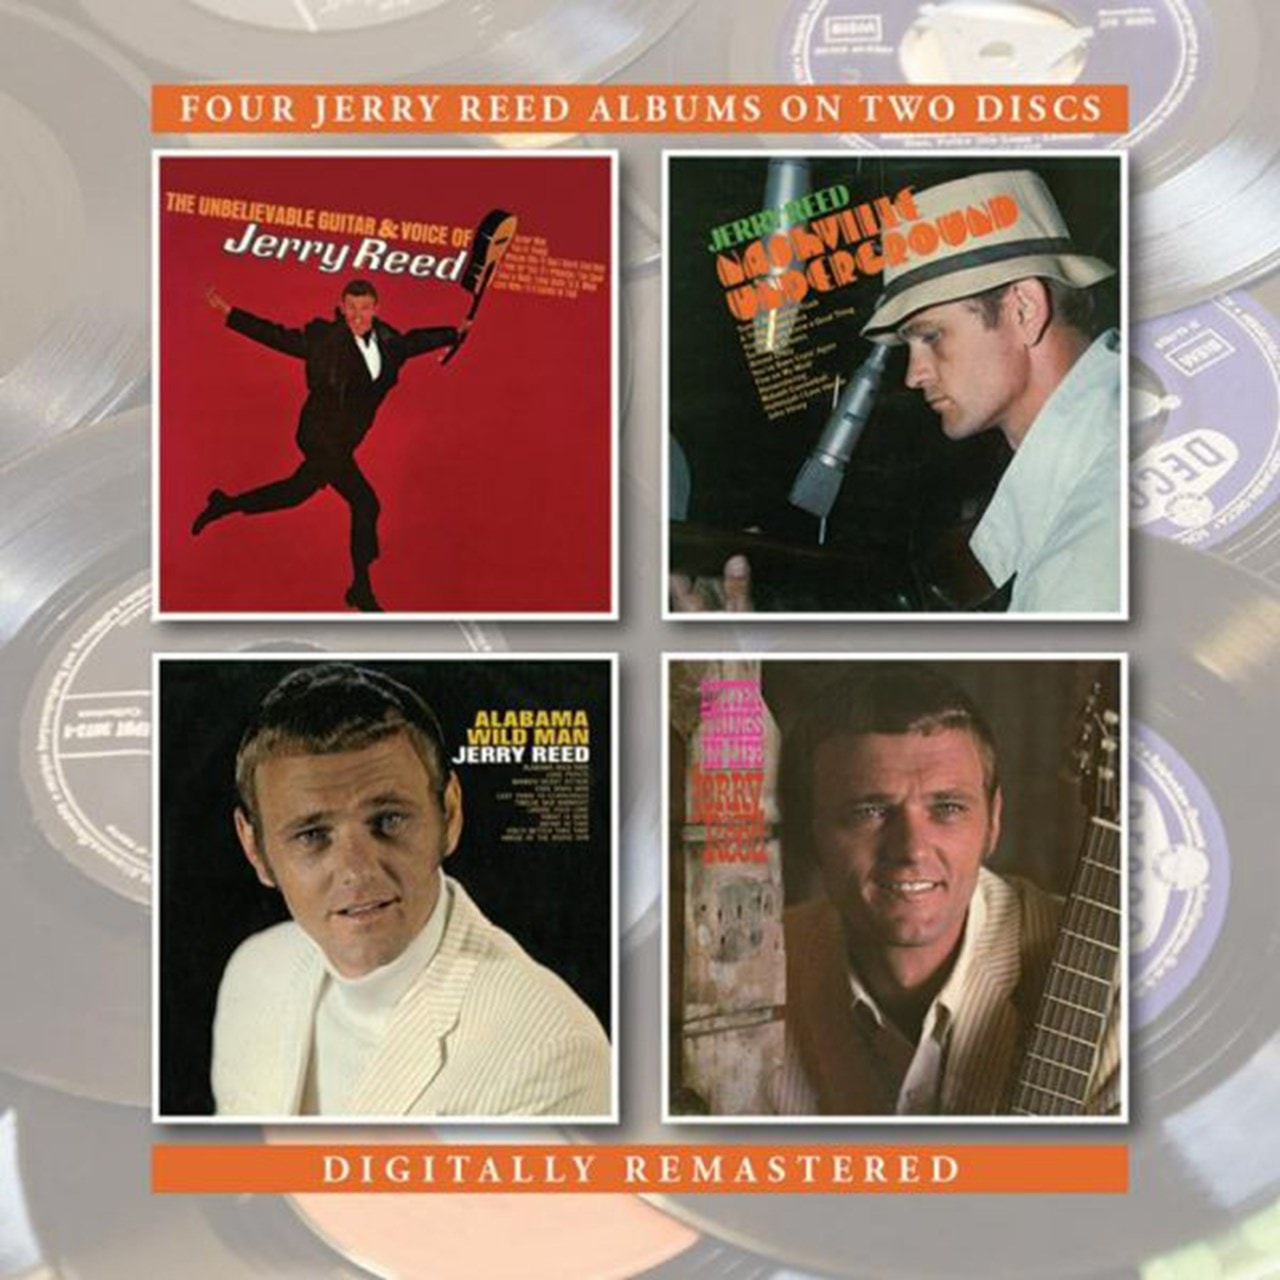 The Unbelievable Guitar and Voice of Jerry Reed/...: Nashville Underground/Alabama Wild Man/Better T - 1